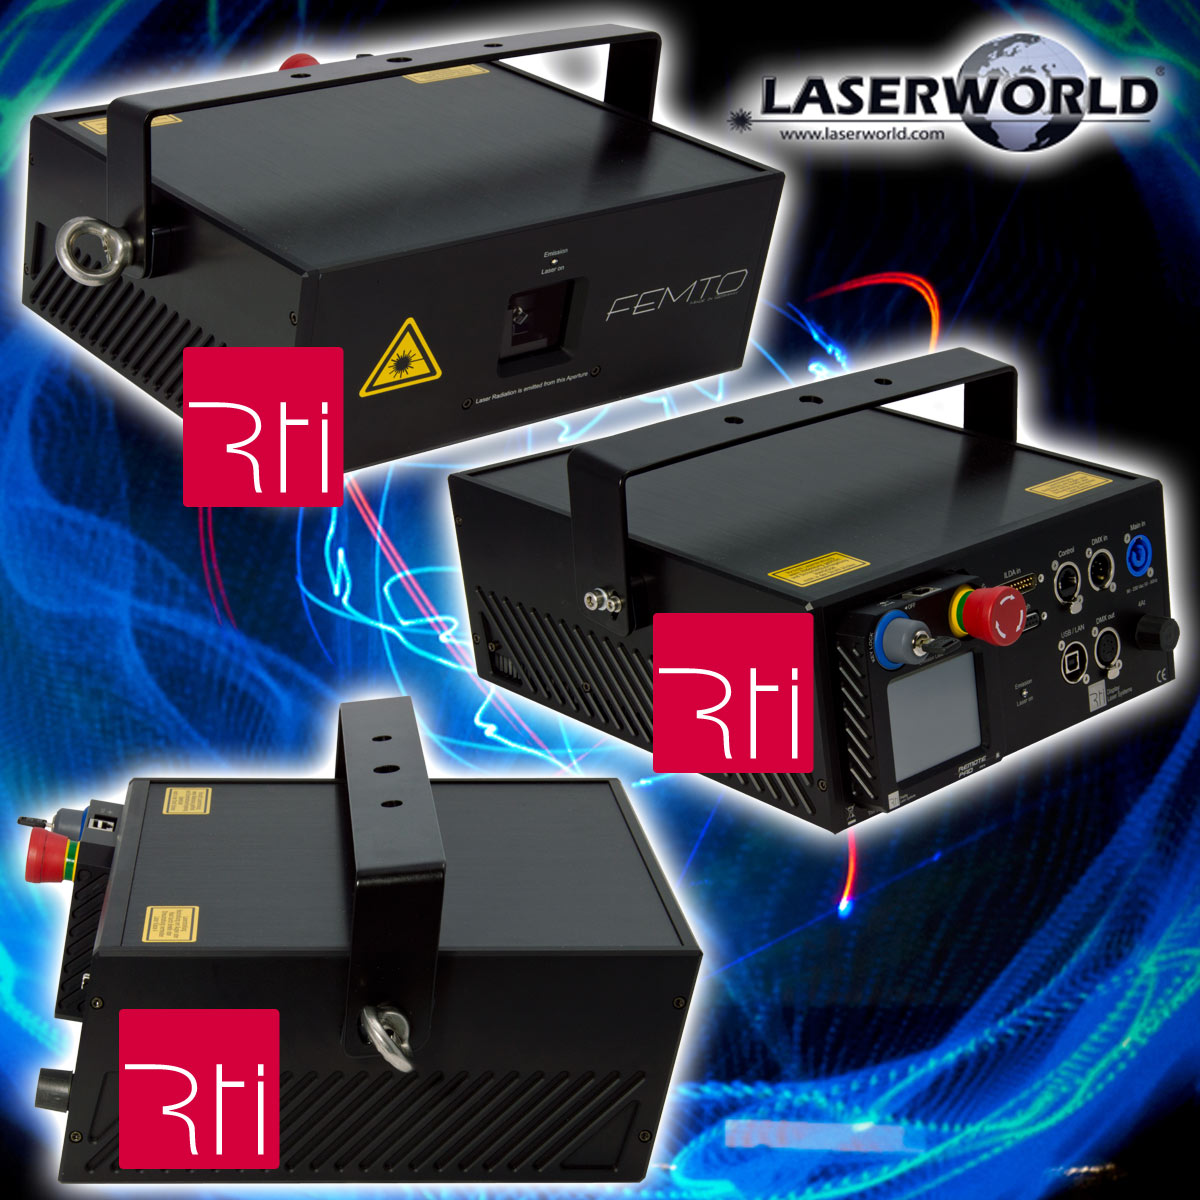 RTI FEMTO Laser - by Laserworld